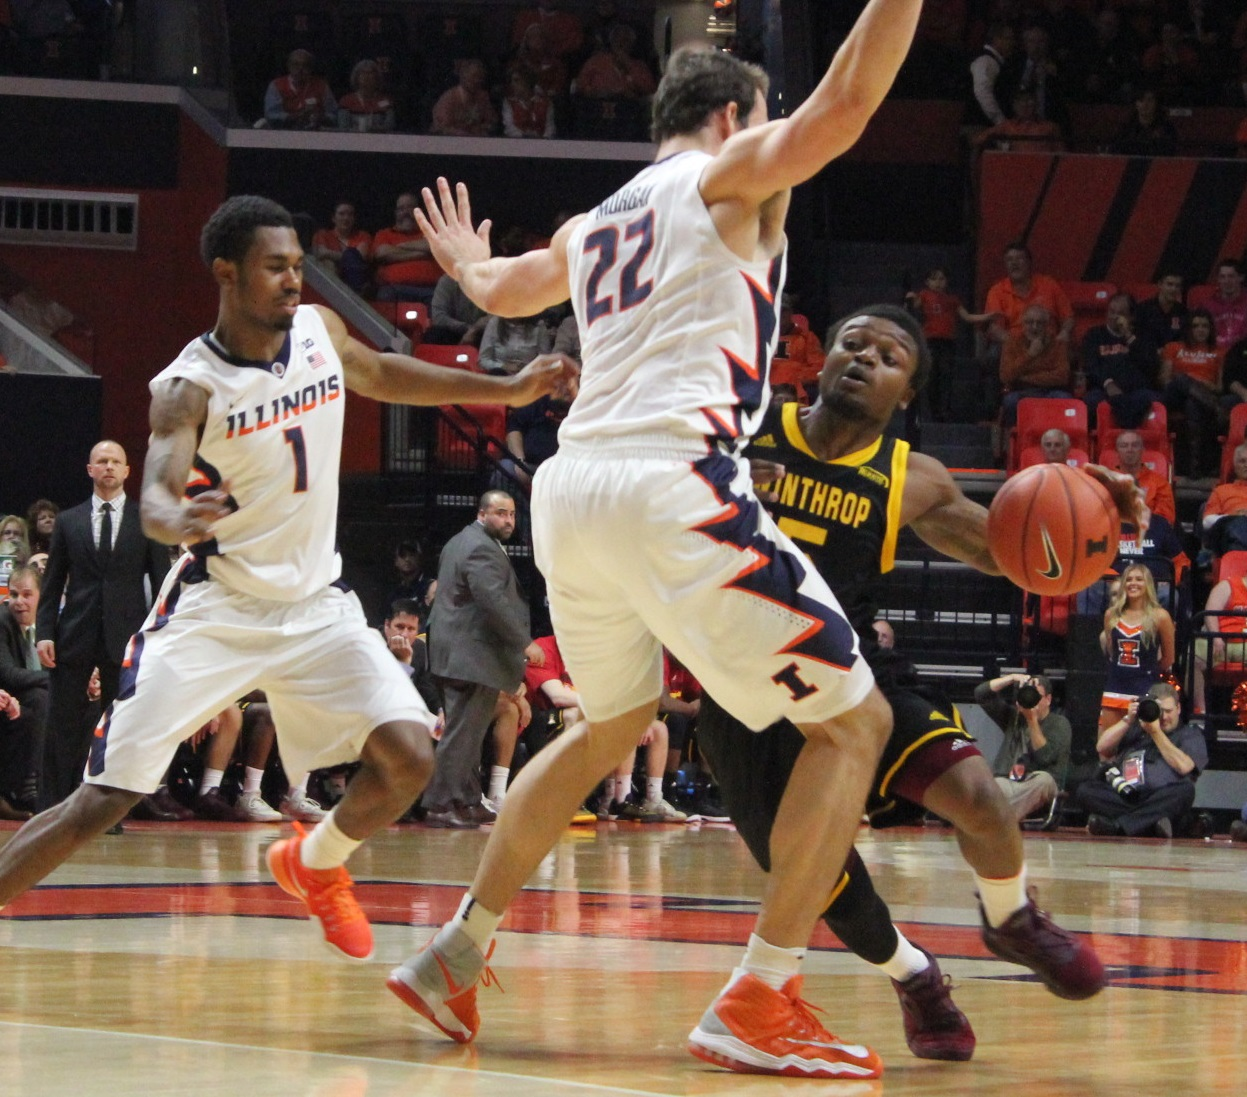 winthrops-keon-johnson-drives-against-illini-center-maverick-morgan-22-monday-night-in-champaign